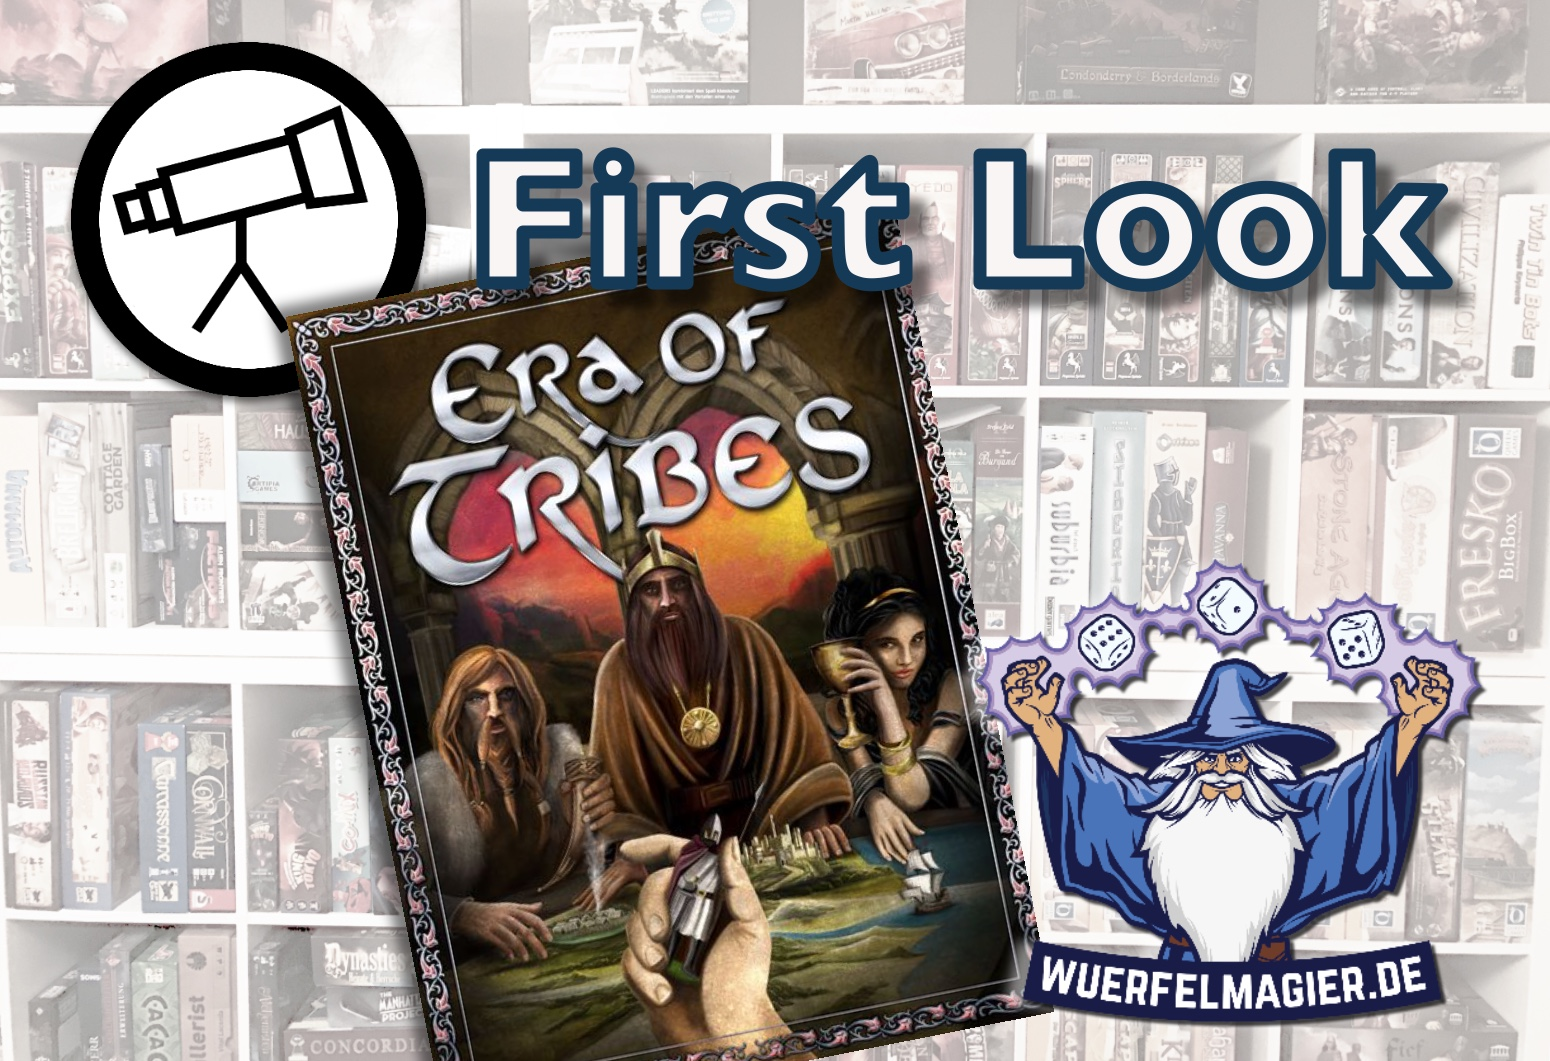 First Look Era of Tribes Kickstarter Crowdfunding Wuerfelmagier Würfelmagier